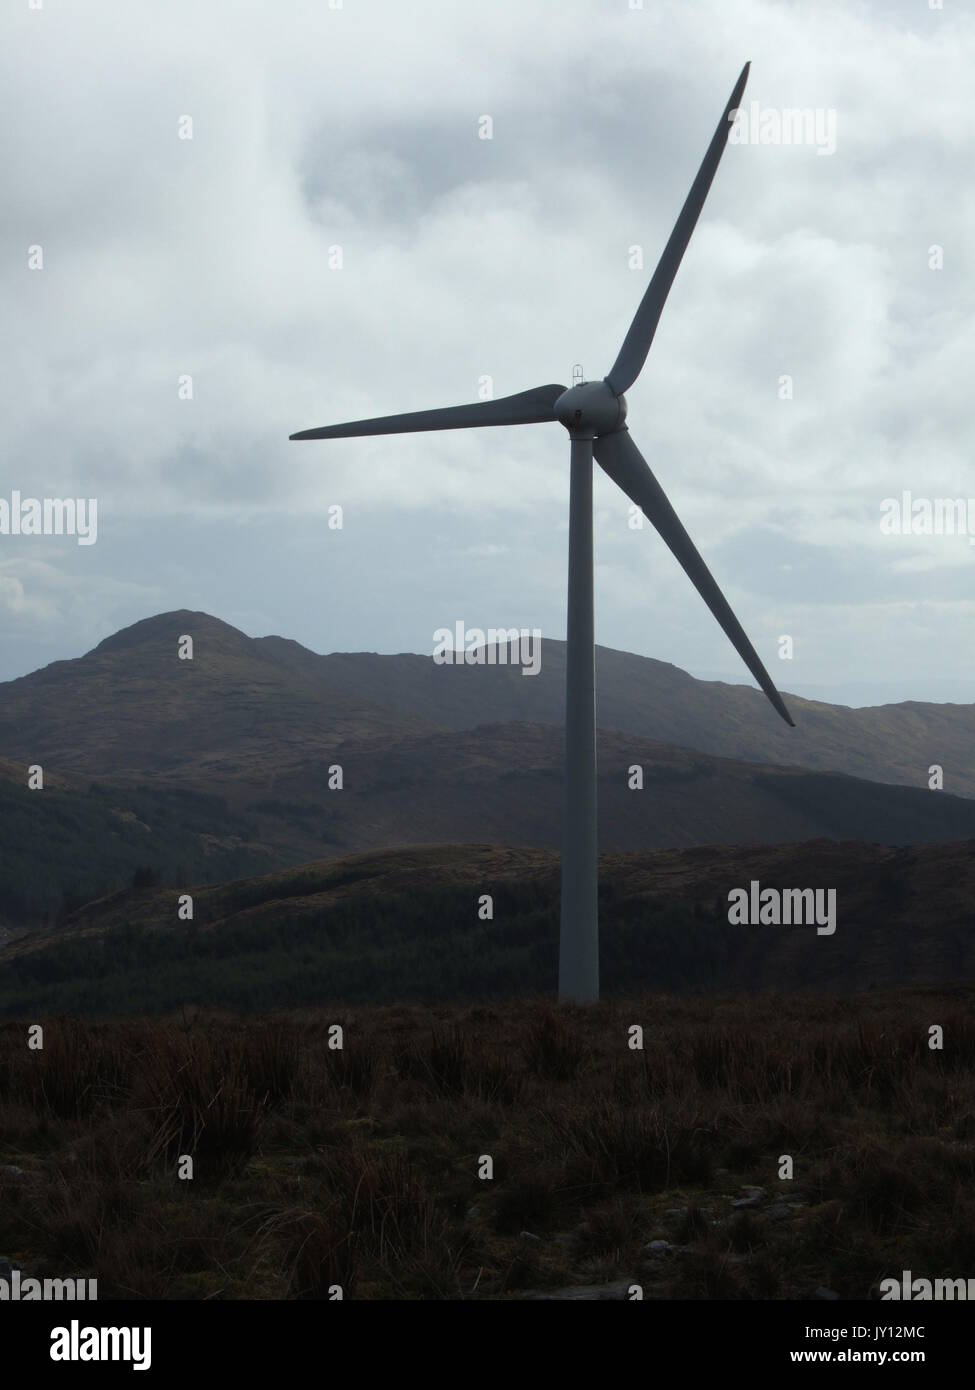 Wind turbines pictured in Donegal August 11th 2017.  Wind energy or wind power describes the process by which wind is used to generate electricity. Wind turbines convert the kinetic energy in wind to electricity by rotating propeller-like blades around a rotor. The rotor turns the drive shaft, which turns an electric generator. Three key factors affect the amount of energy a turbine can harness from the wind: wind speed, air density, and swept area. Renewable energy is energy that is collected from renewable resources, which are naturally replenished on a human timescale, such as sunlight, win - Stock Image